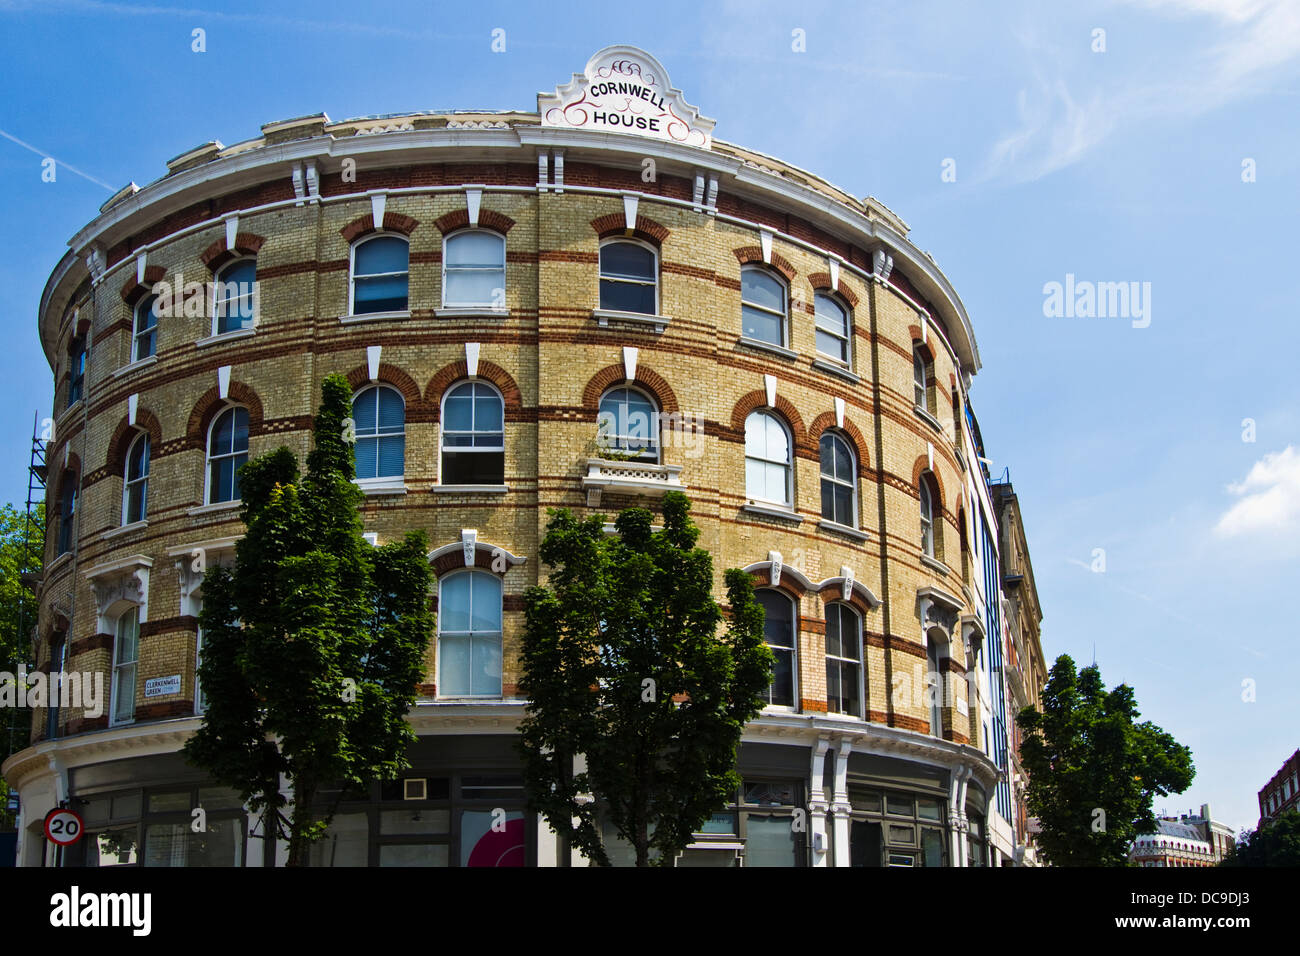 Round shaped building of Cornwell house in Clerkenwell, London - Stock Image